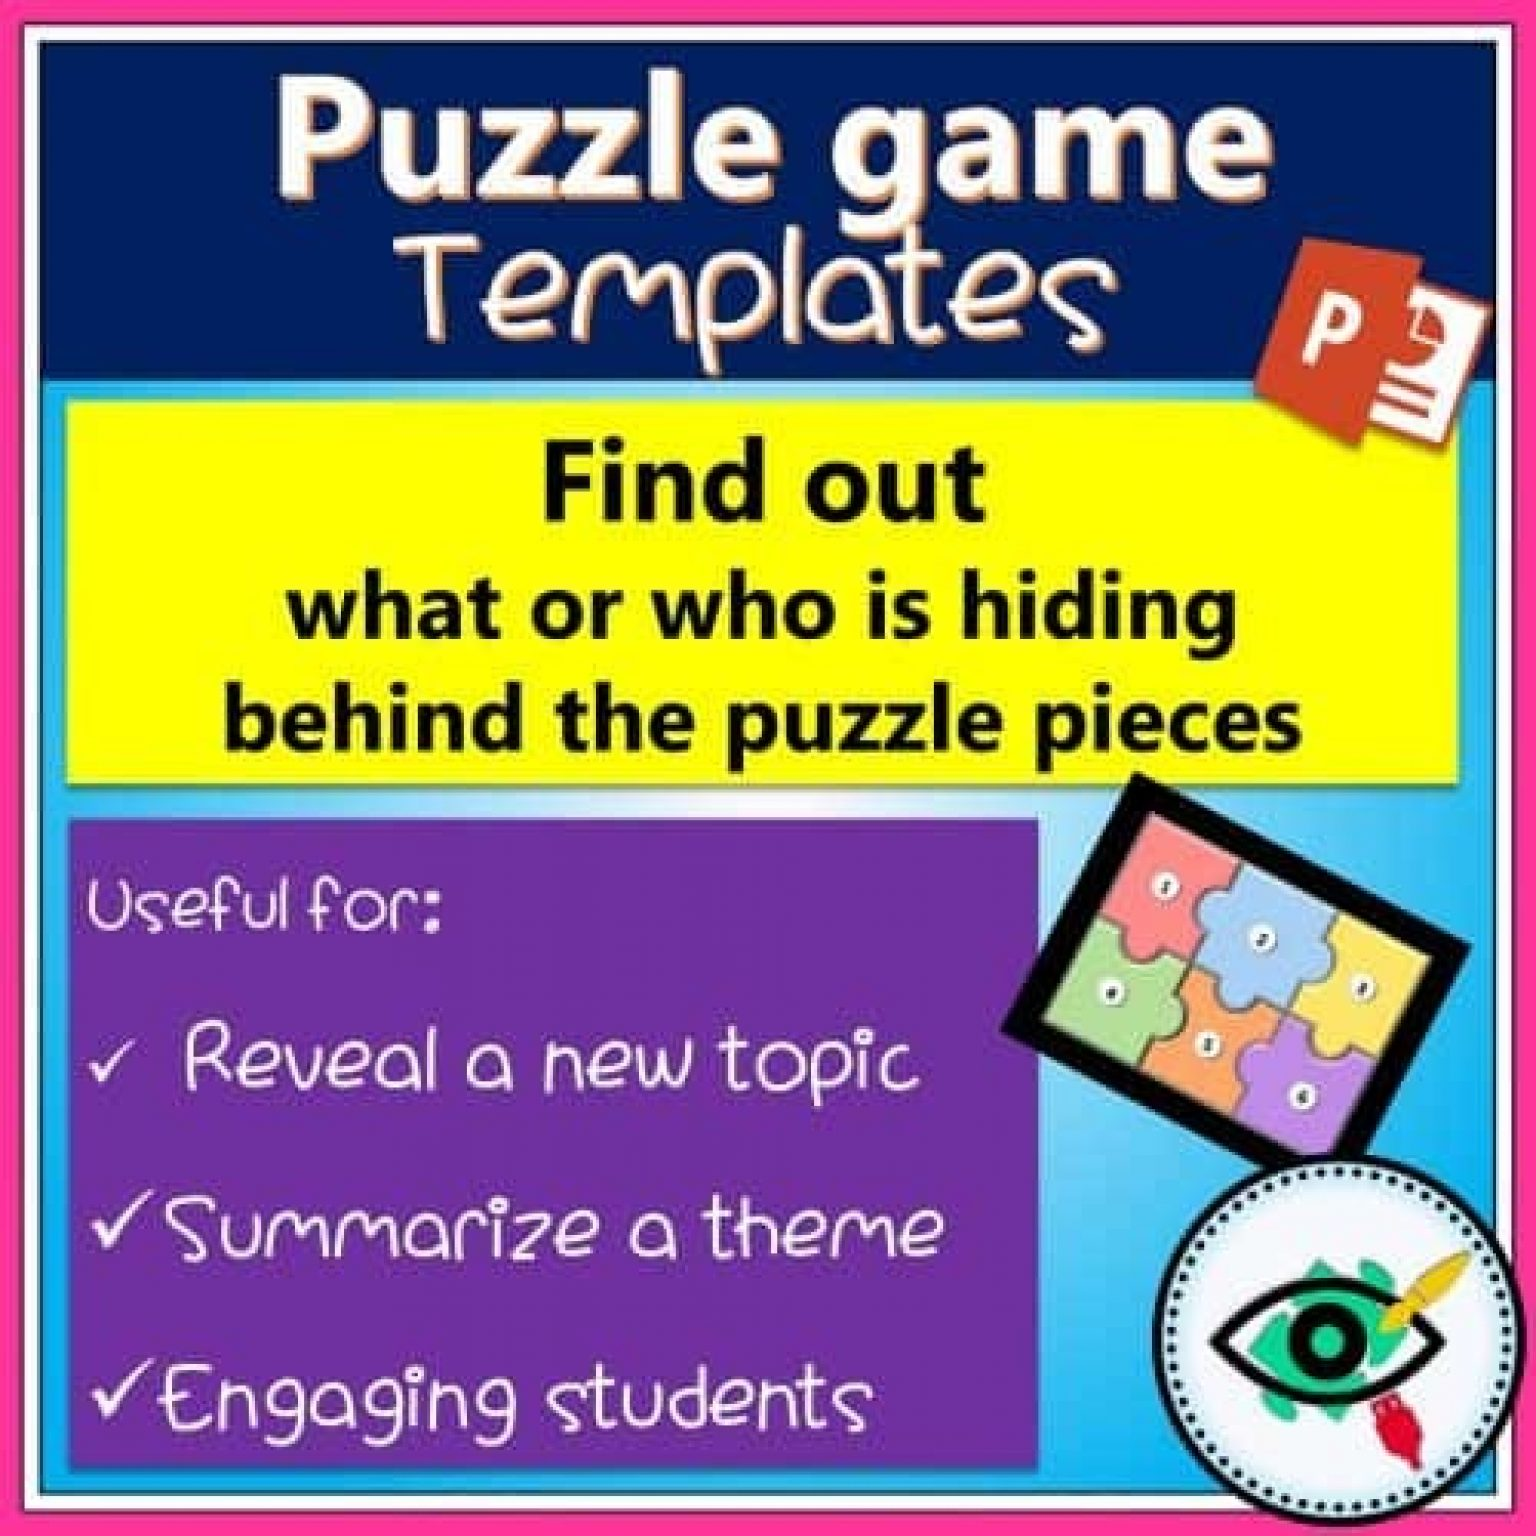 puzzle-game-templates-title1